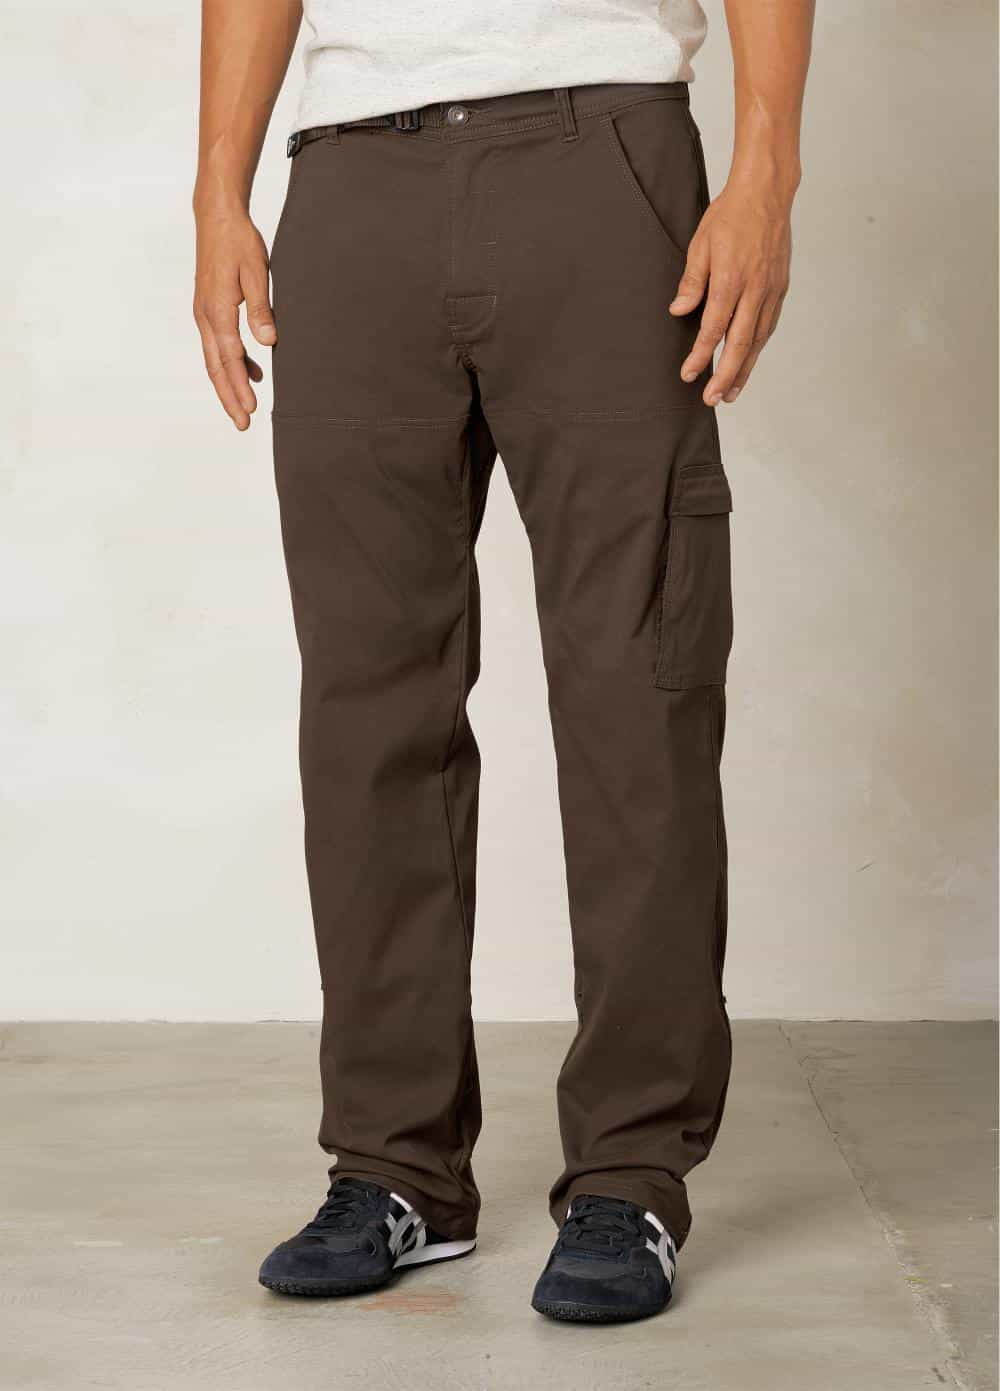 prAna-Stretch Zion Pant - Men's